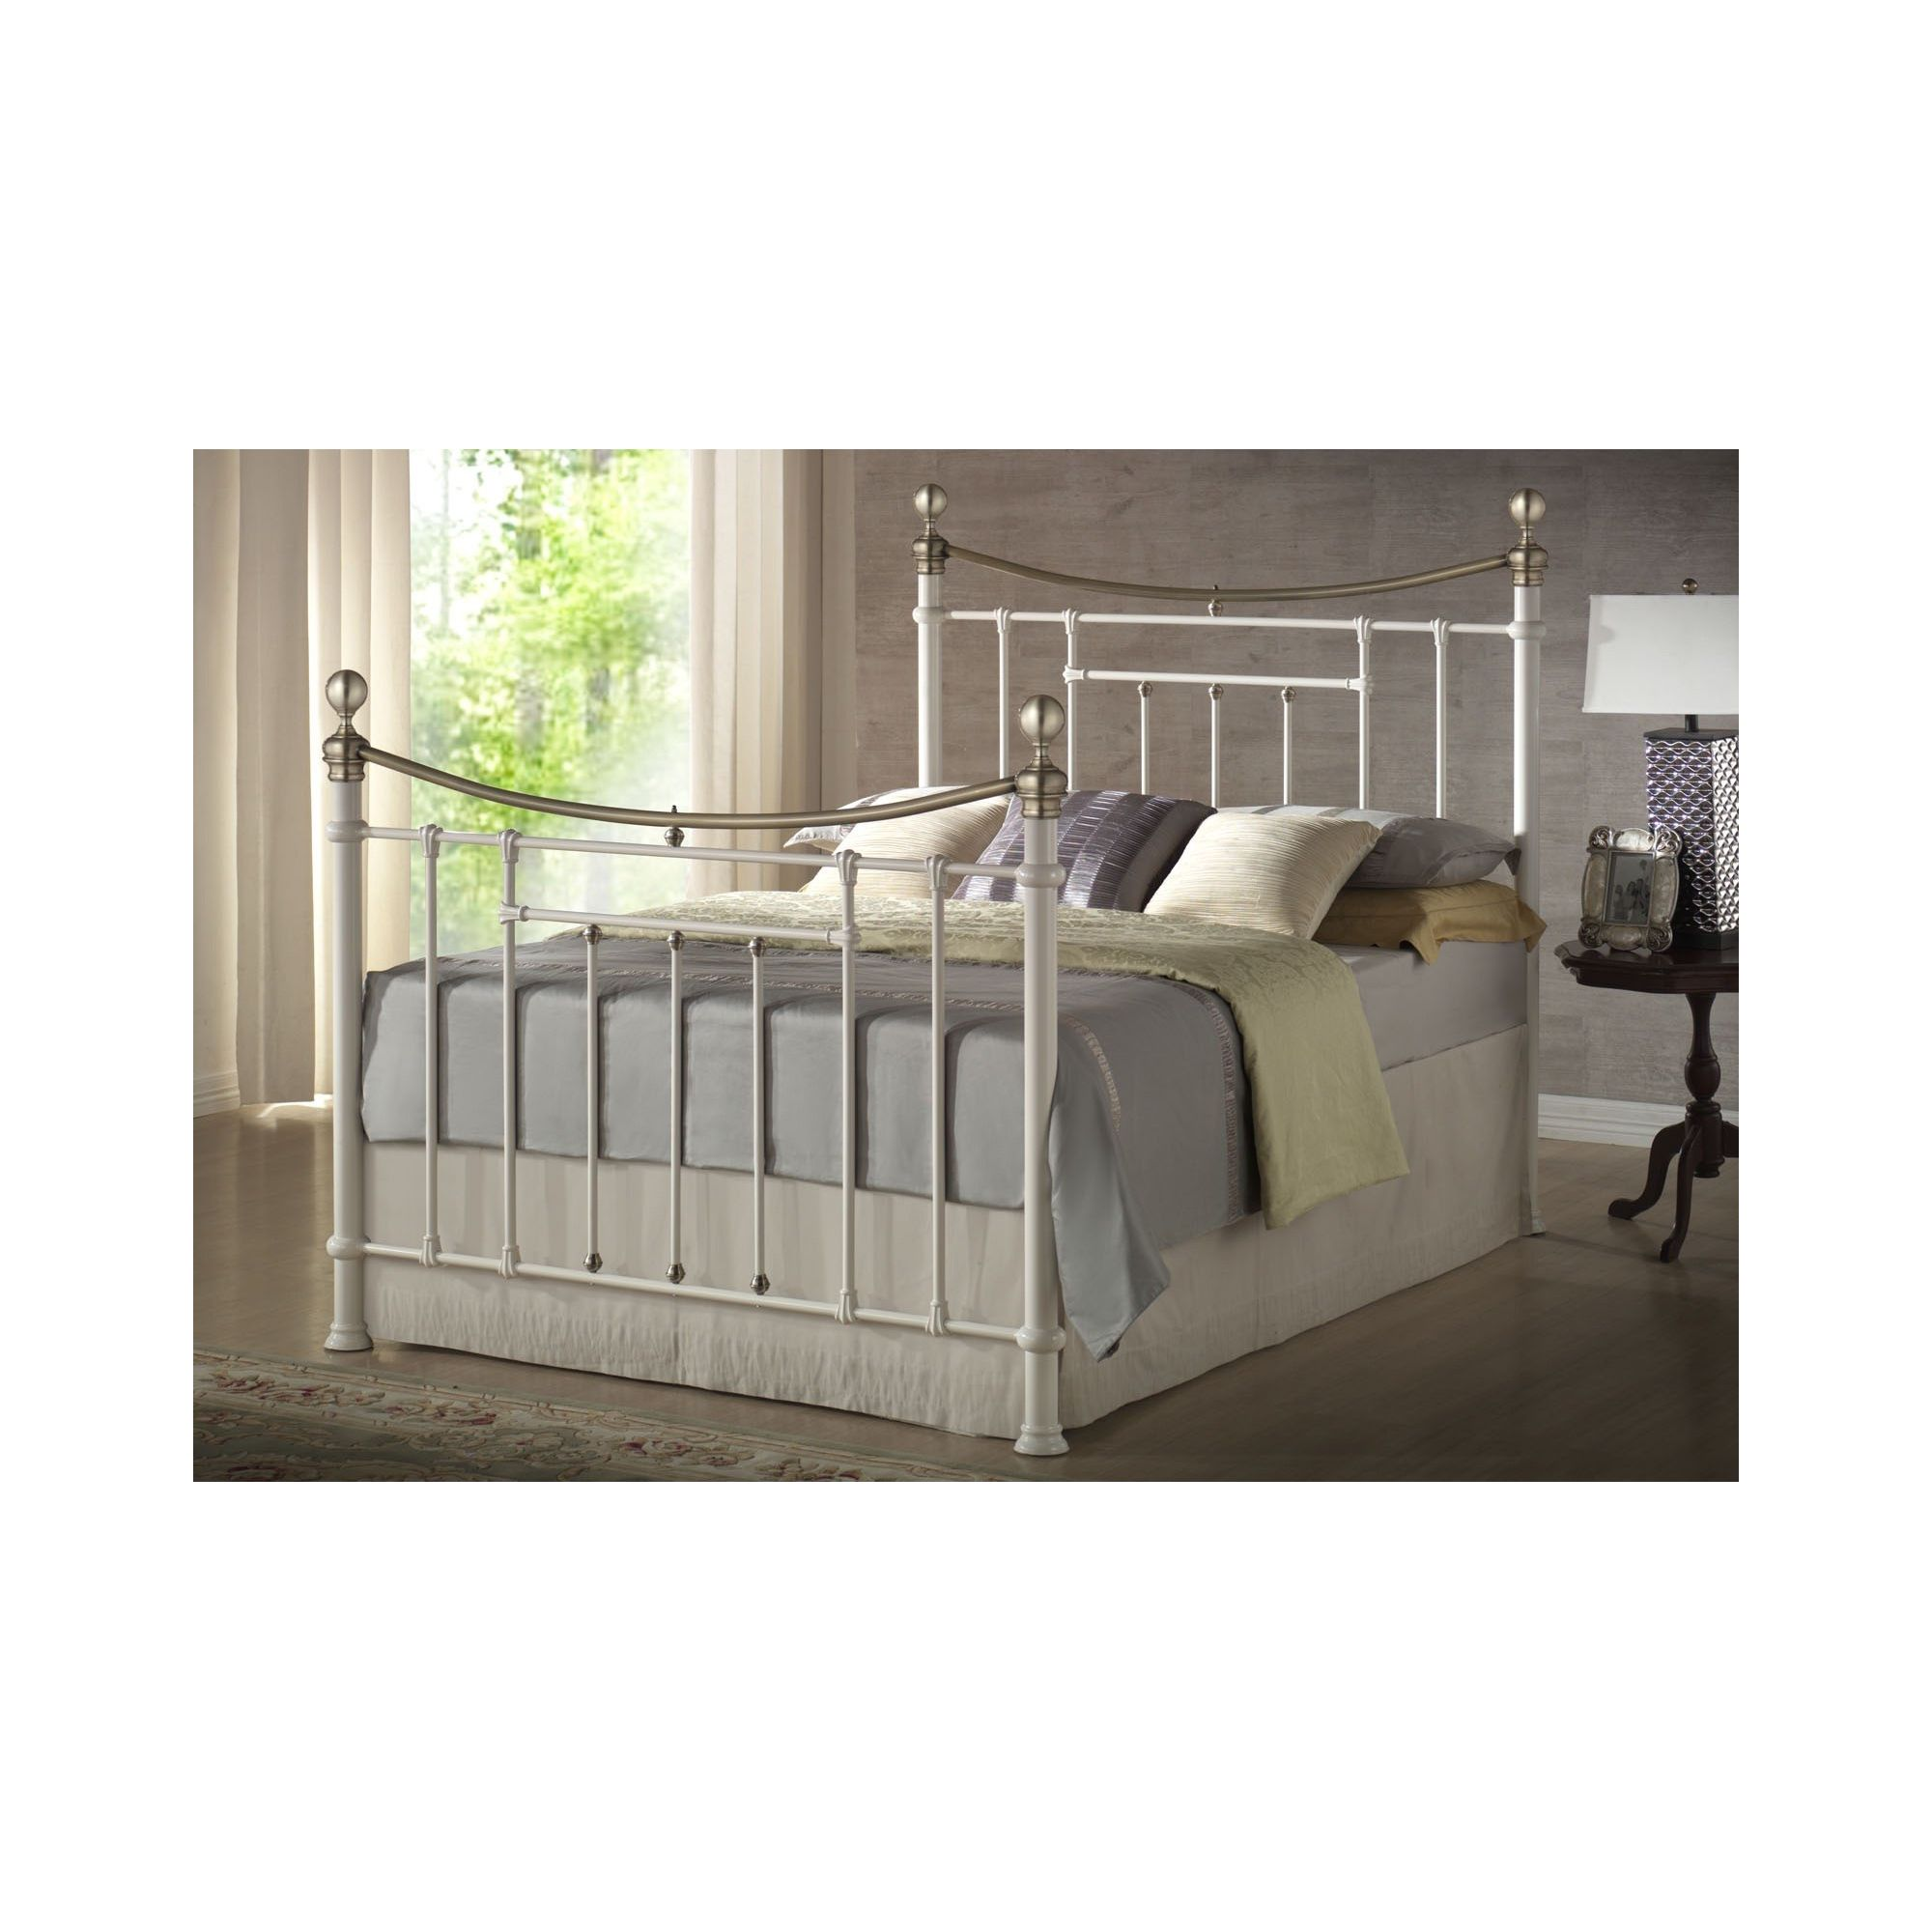 Birlea Bronte Metal Bed Frame - King - Cream at Tesco Direct